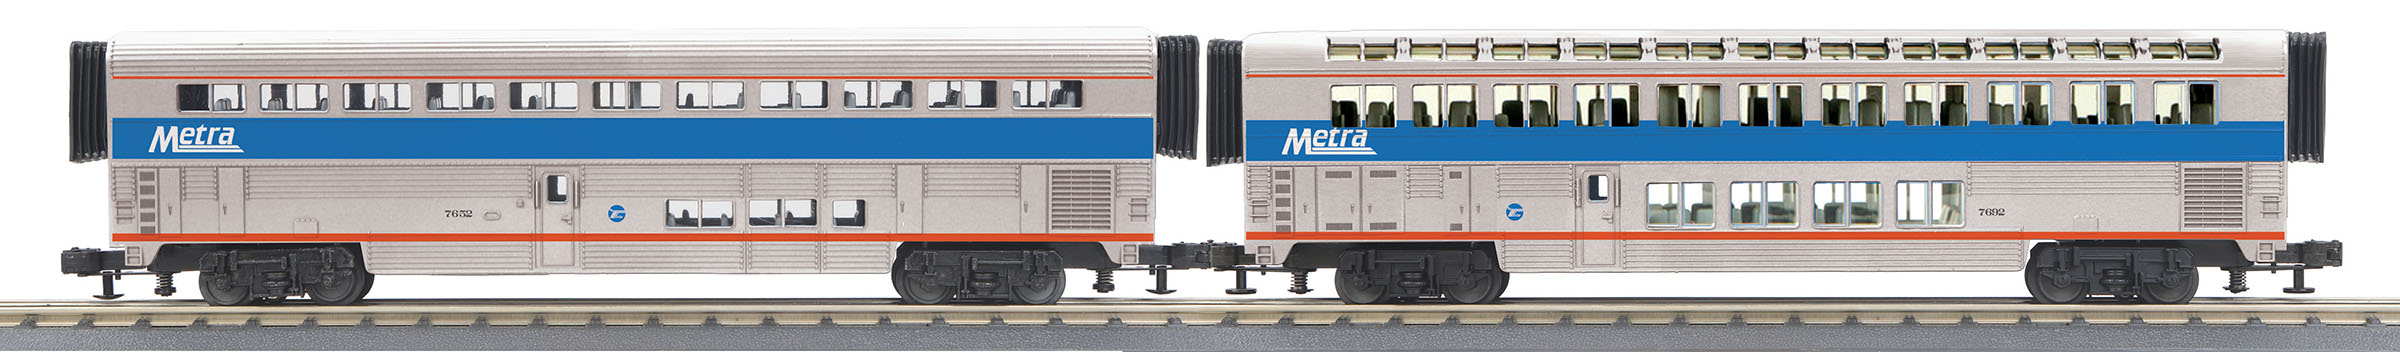 MTH306545 MTH Electric Trains O-31 SuperLiner Coach/Lounge Set, METRA #7658 (2)